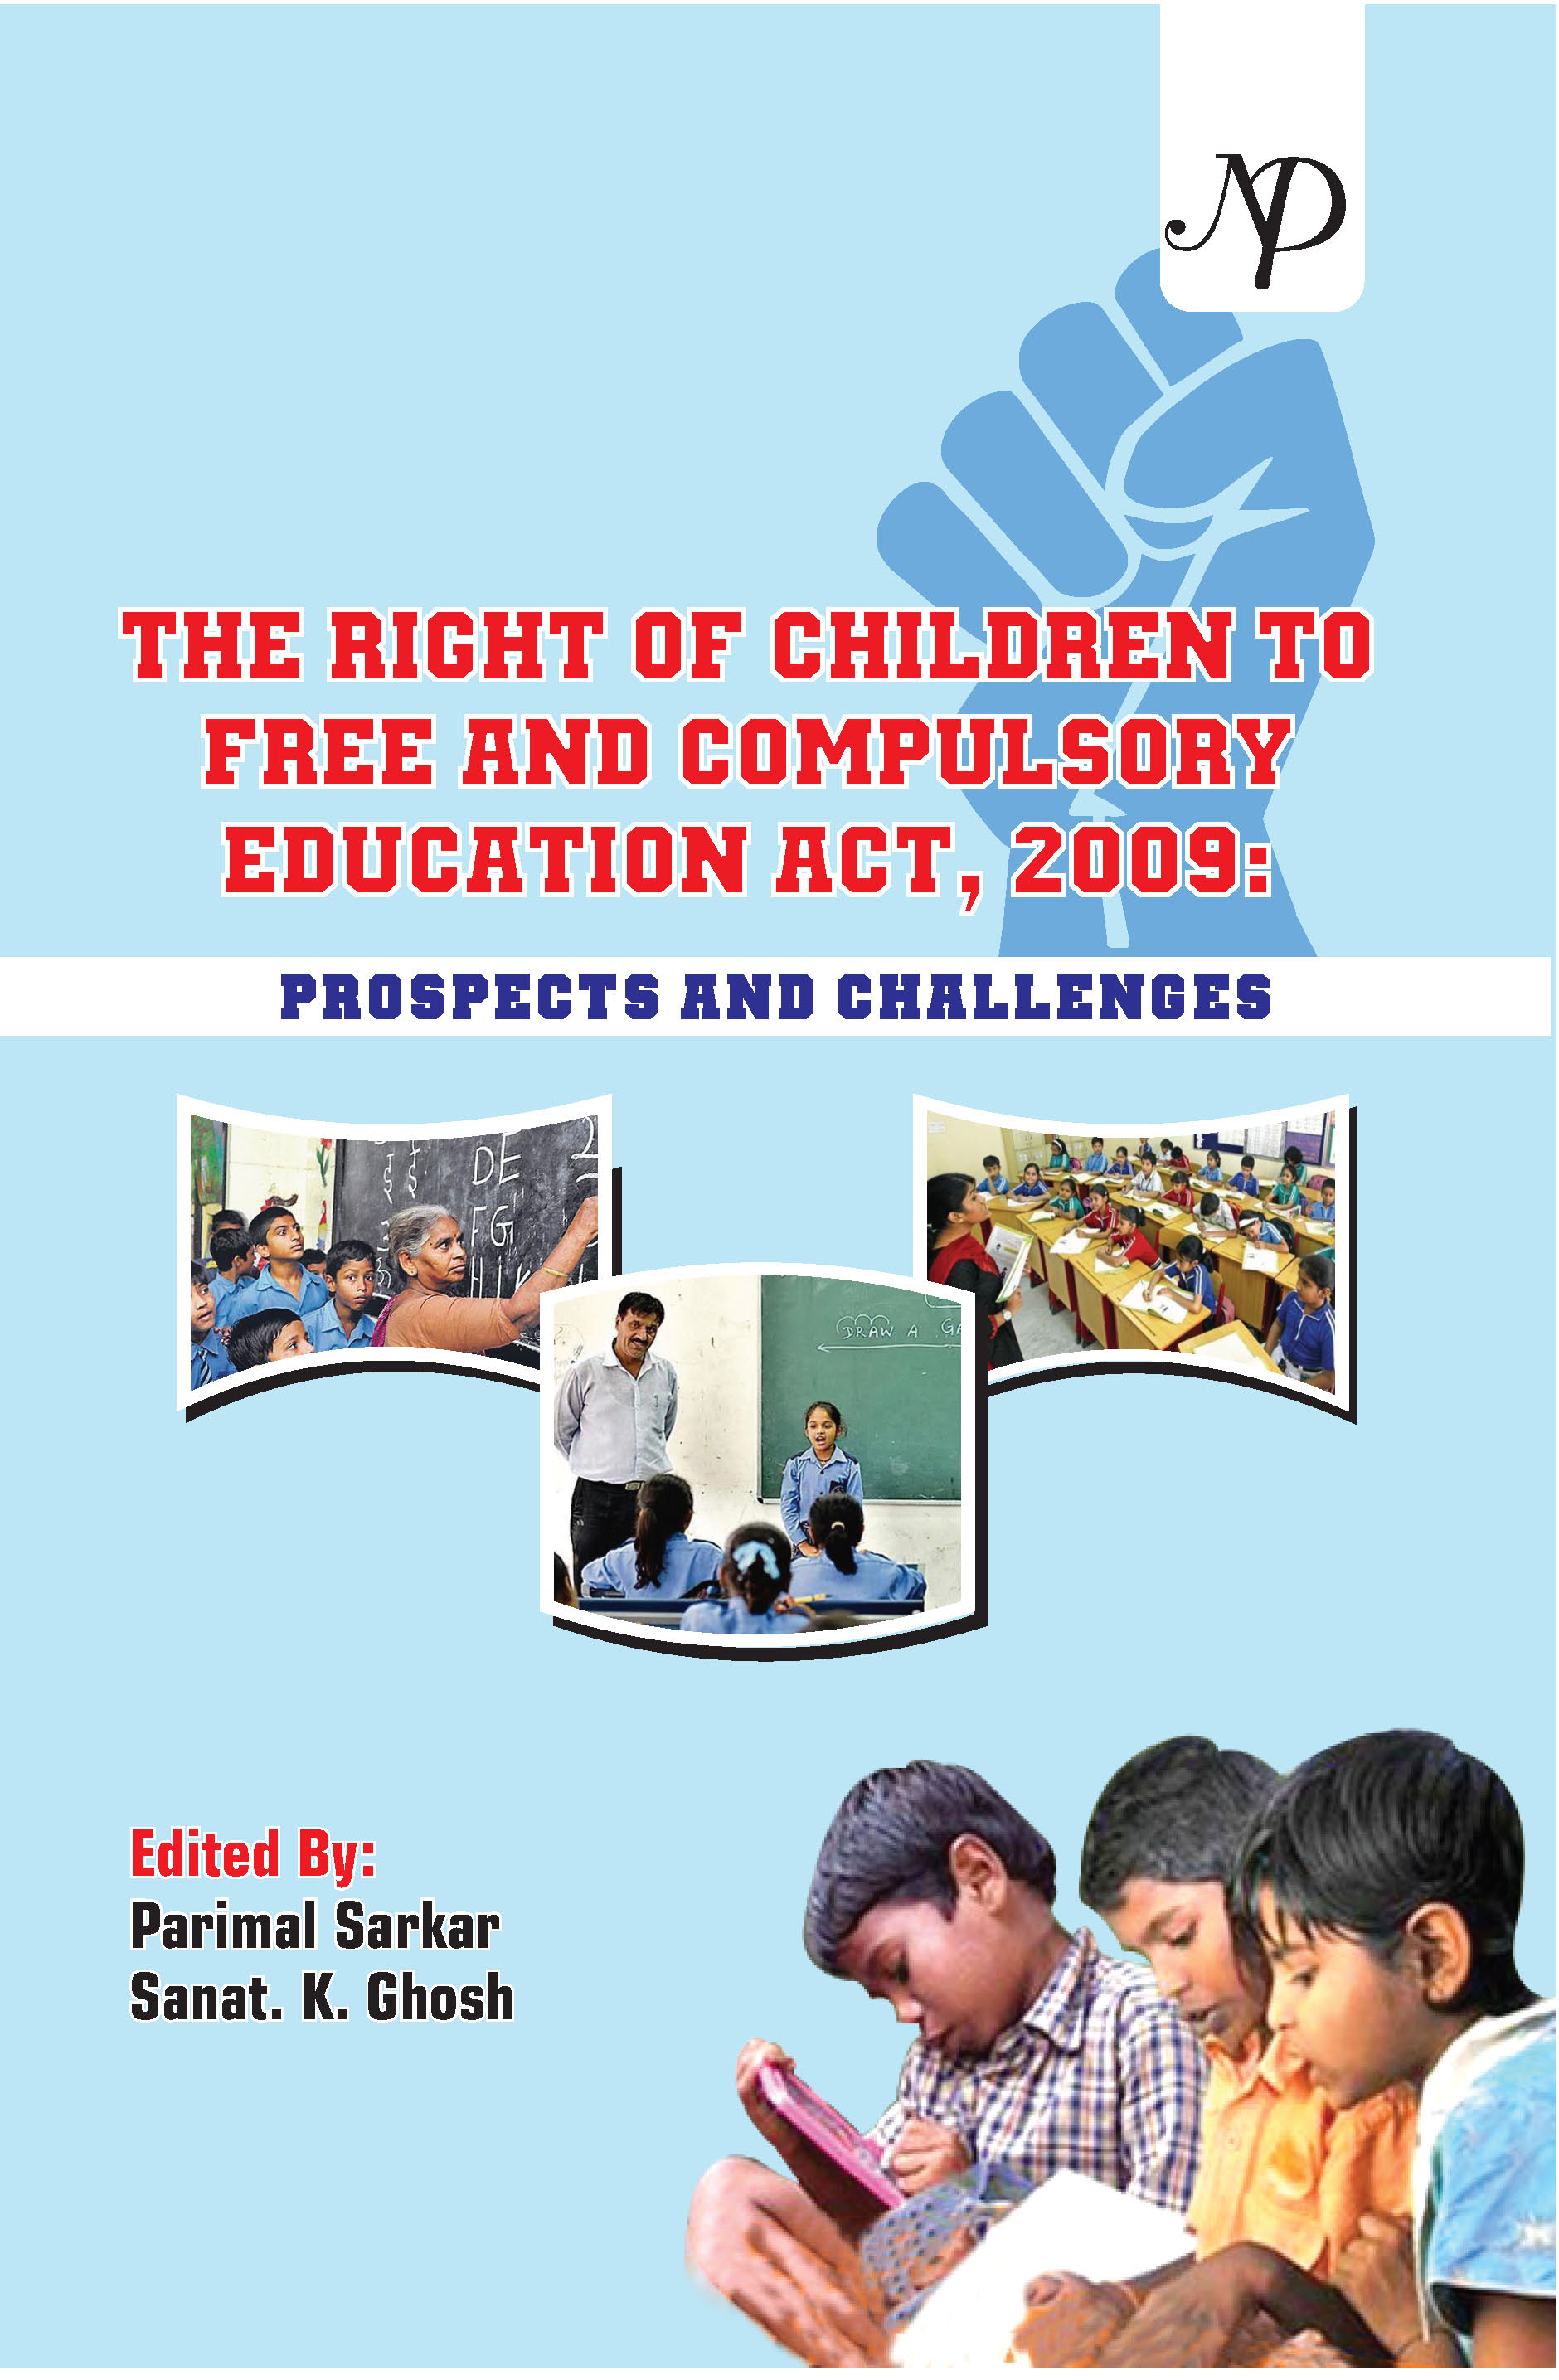 The Right of children to free and compulsory education Cover.jpg